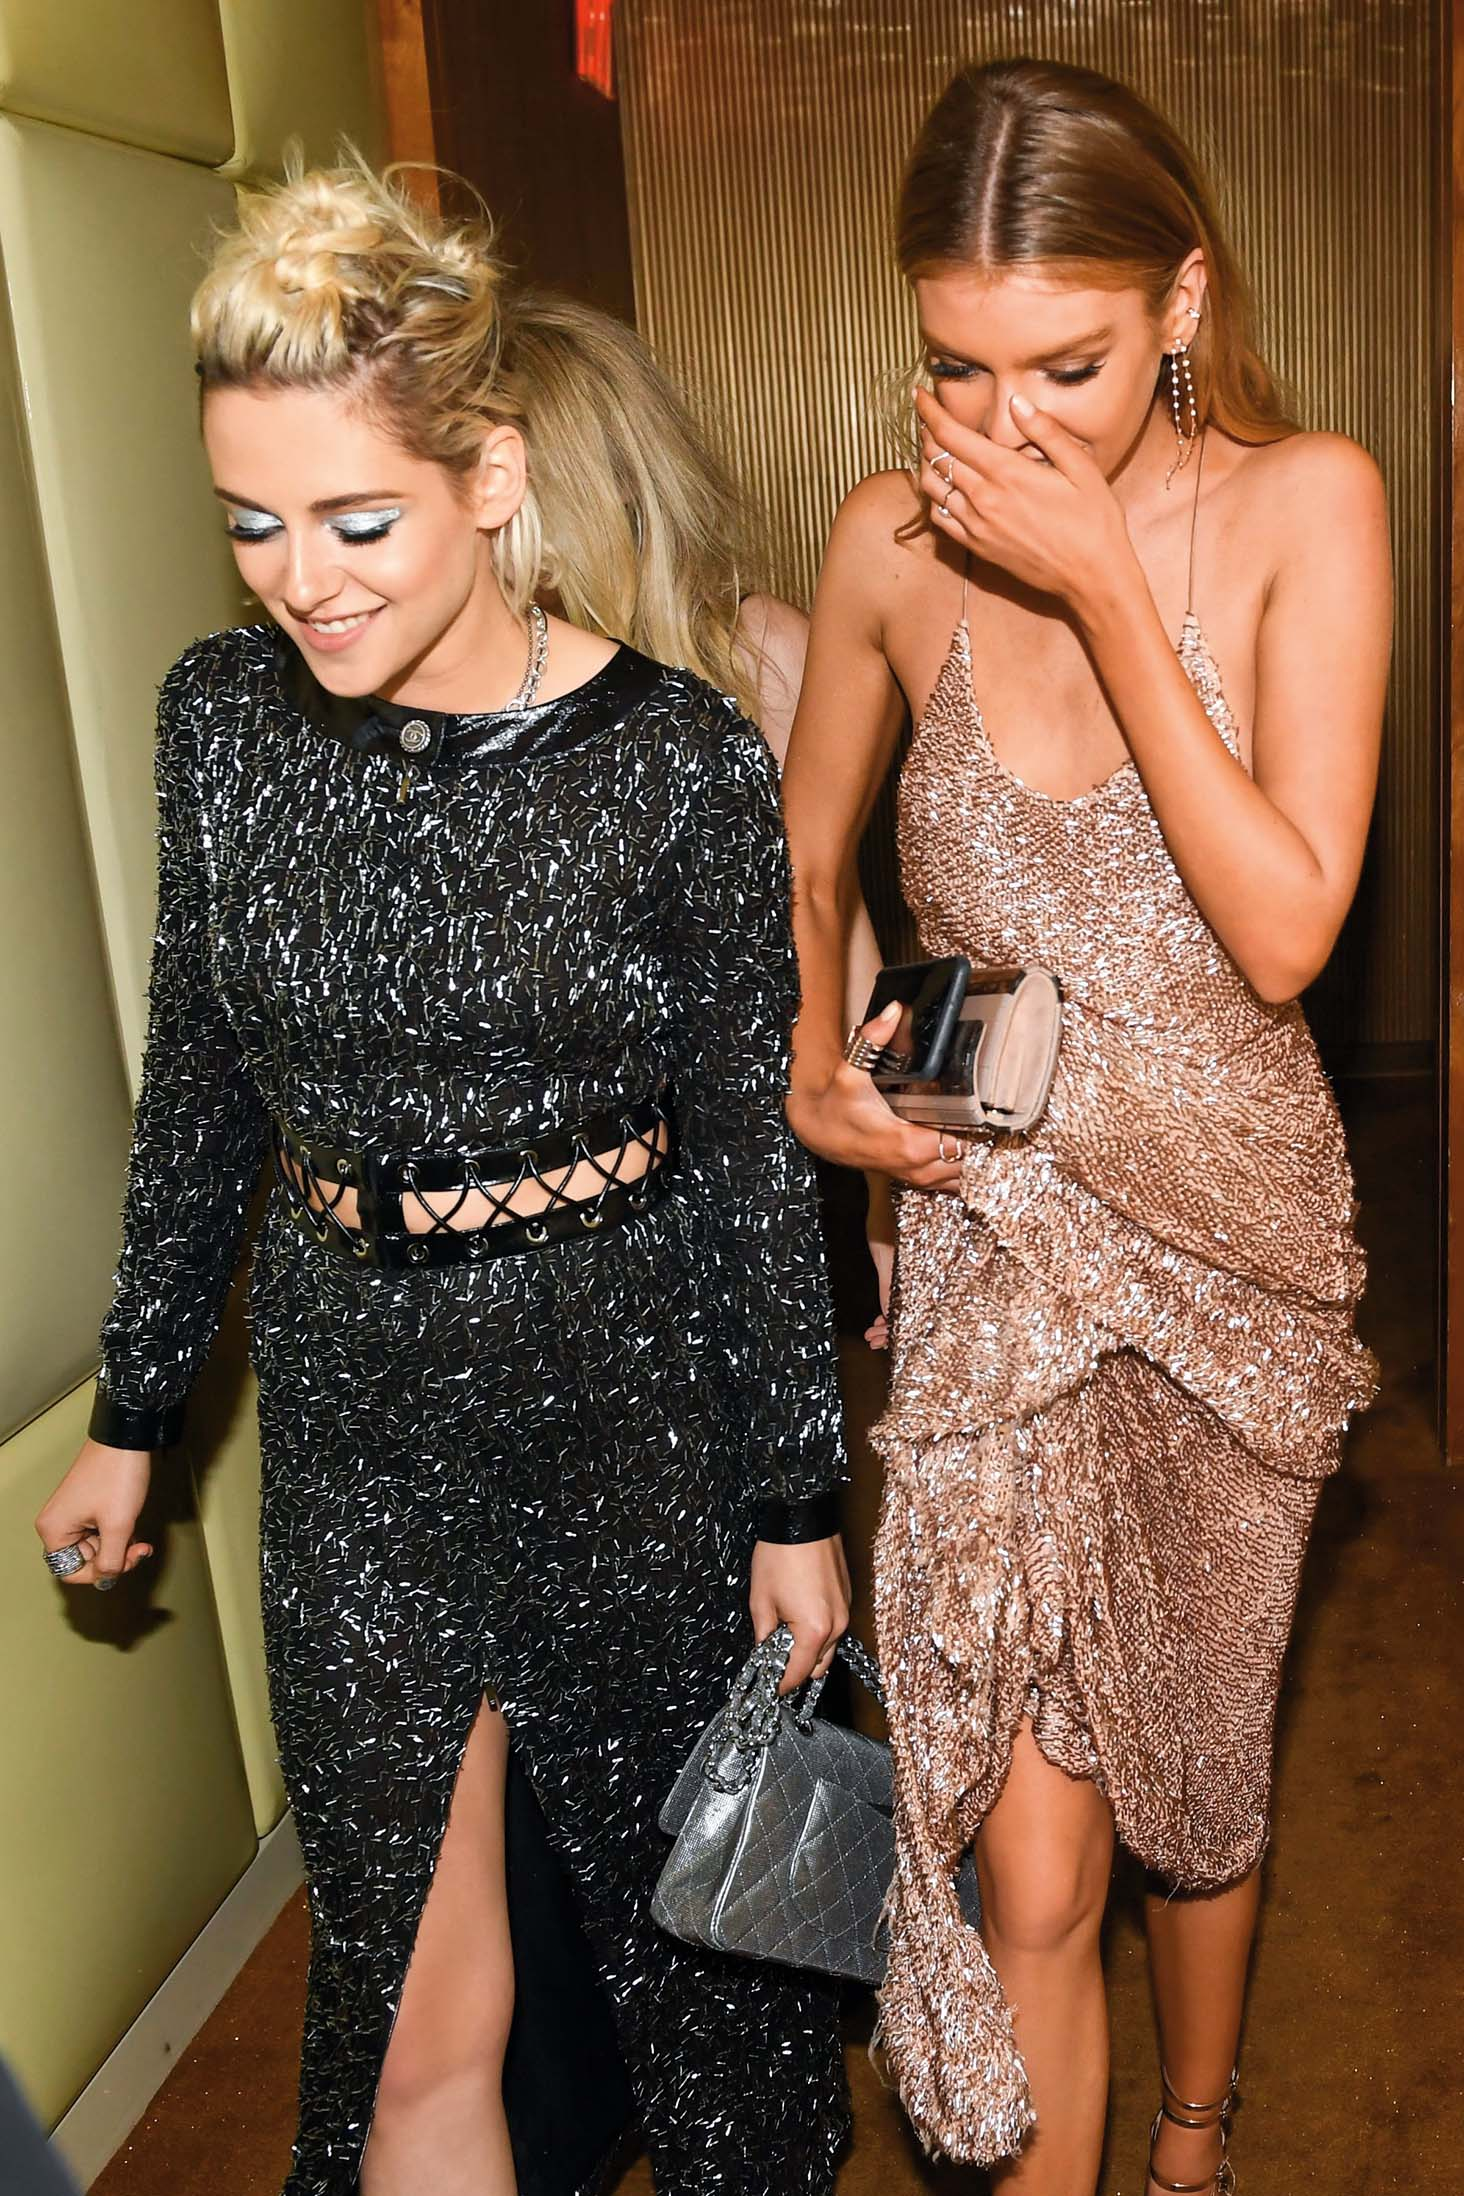 EXCLUSIVE /Kristen Stewart, Stella Maxwell Costume Institute Benefit Gala celebrating 'Manus x Machina: Fashion in an Age of Technology' exhibition, After the Met with Apple Music Party, Boom Boom Room, New York, America - 02 May 2016, Image: 283405185, License: Rights-managed, Restrictions: EXCLUSIVE, Model Release: no, Credit line: Profimedia, TEMP Rex Features